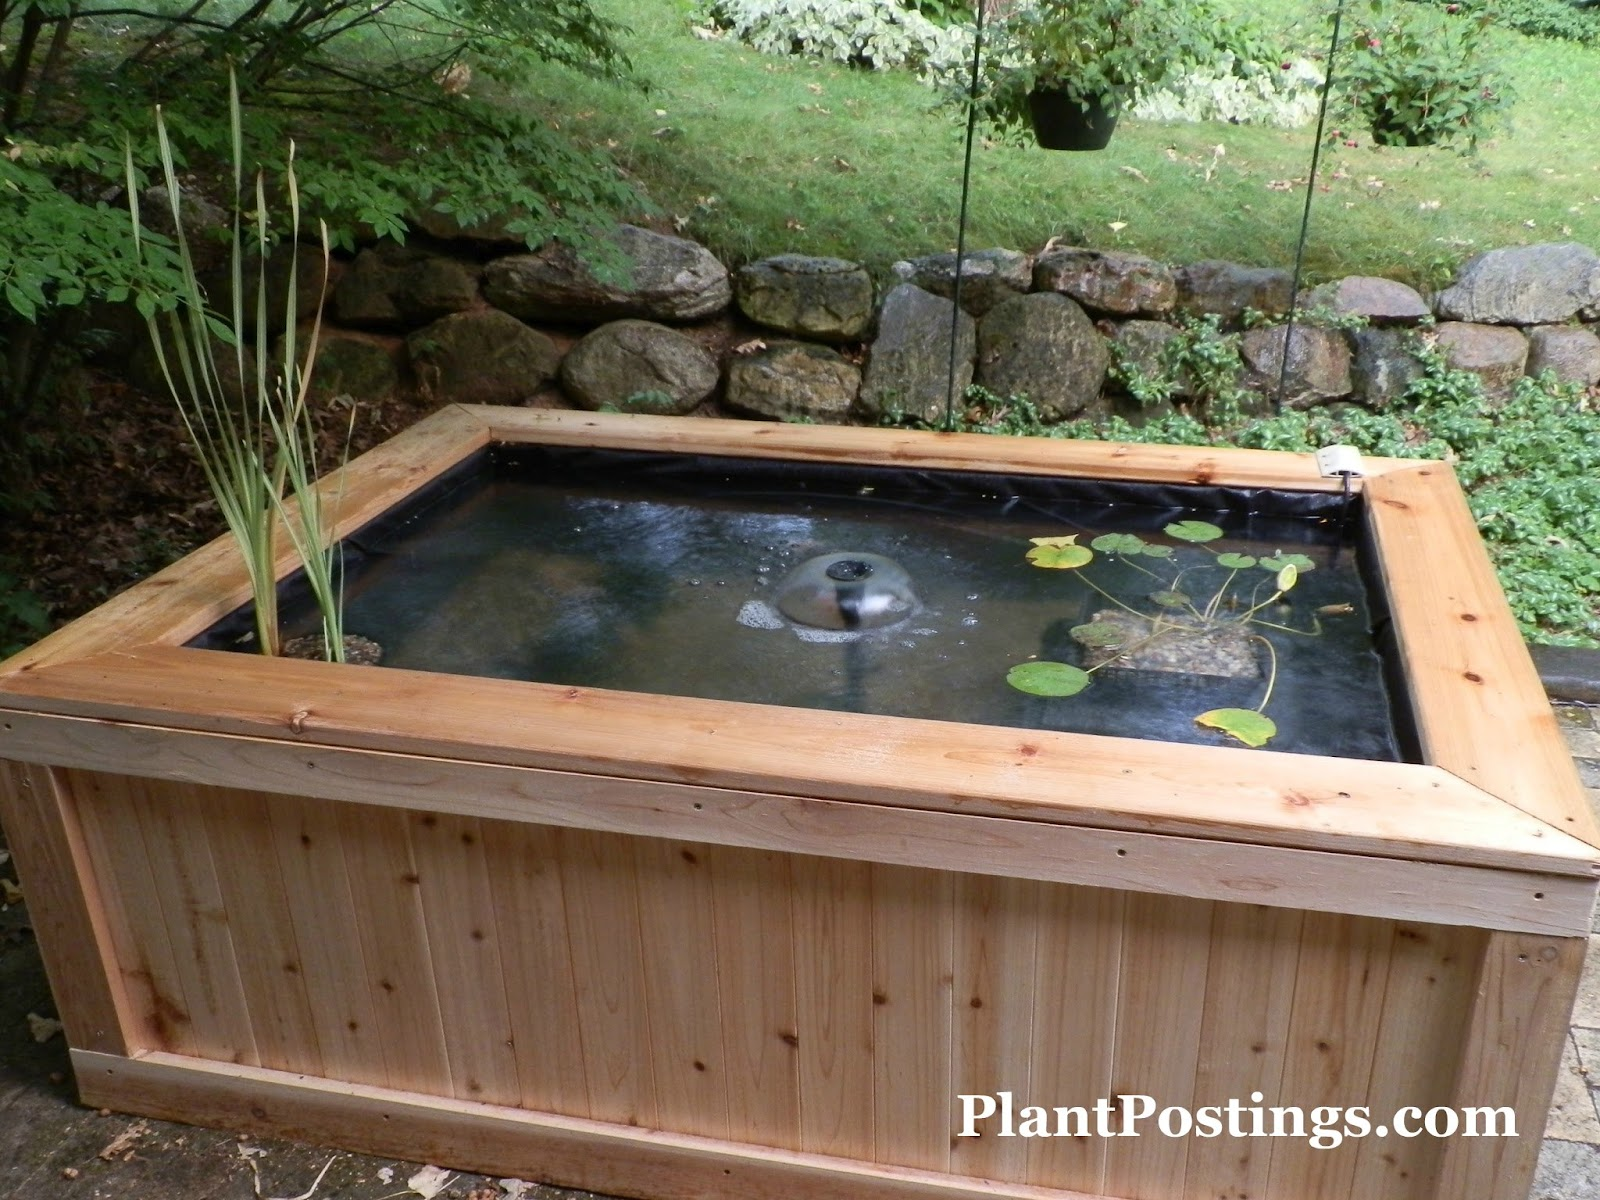 Plantpostings how to make an above ground pond for Diy fish pond